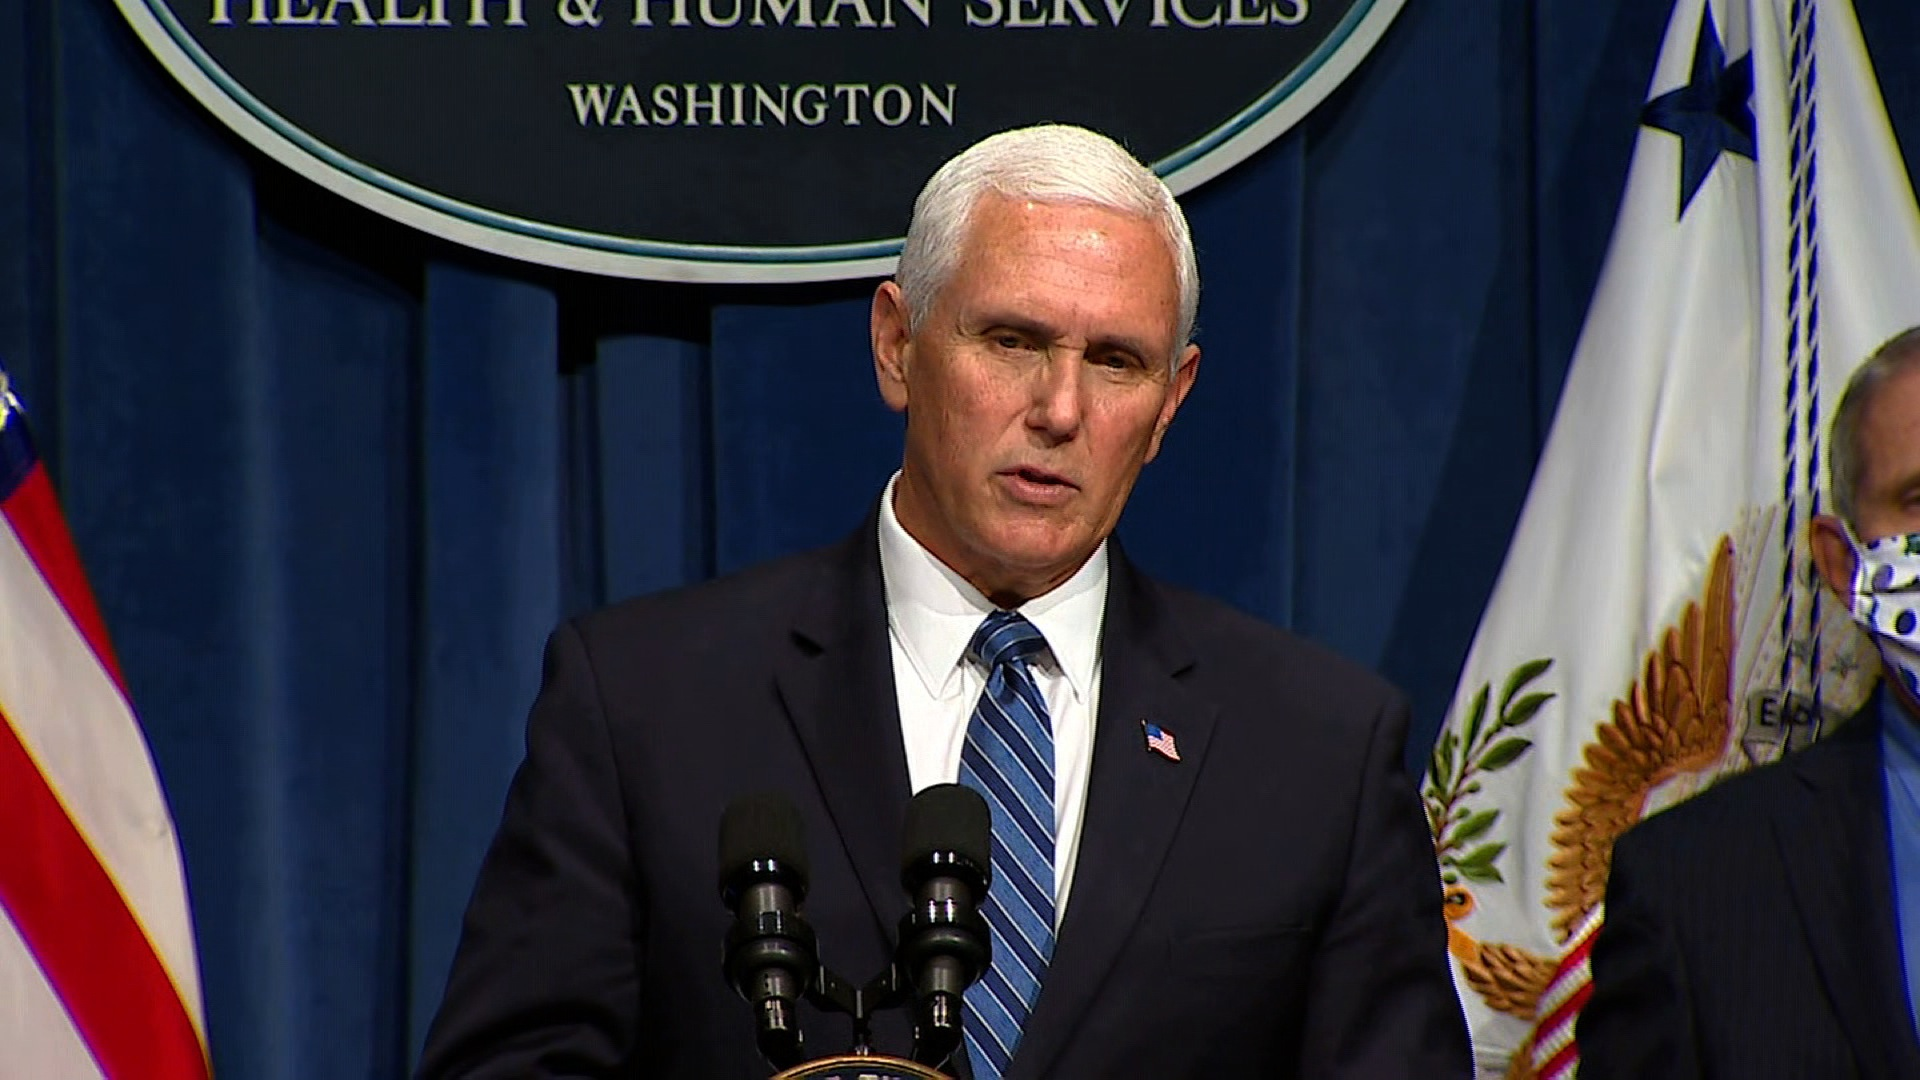 Vice President Mike Pence speaks at a coronavirus task force briefing in Washington, DC, on June 26.